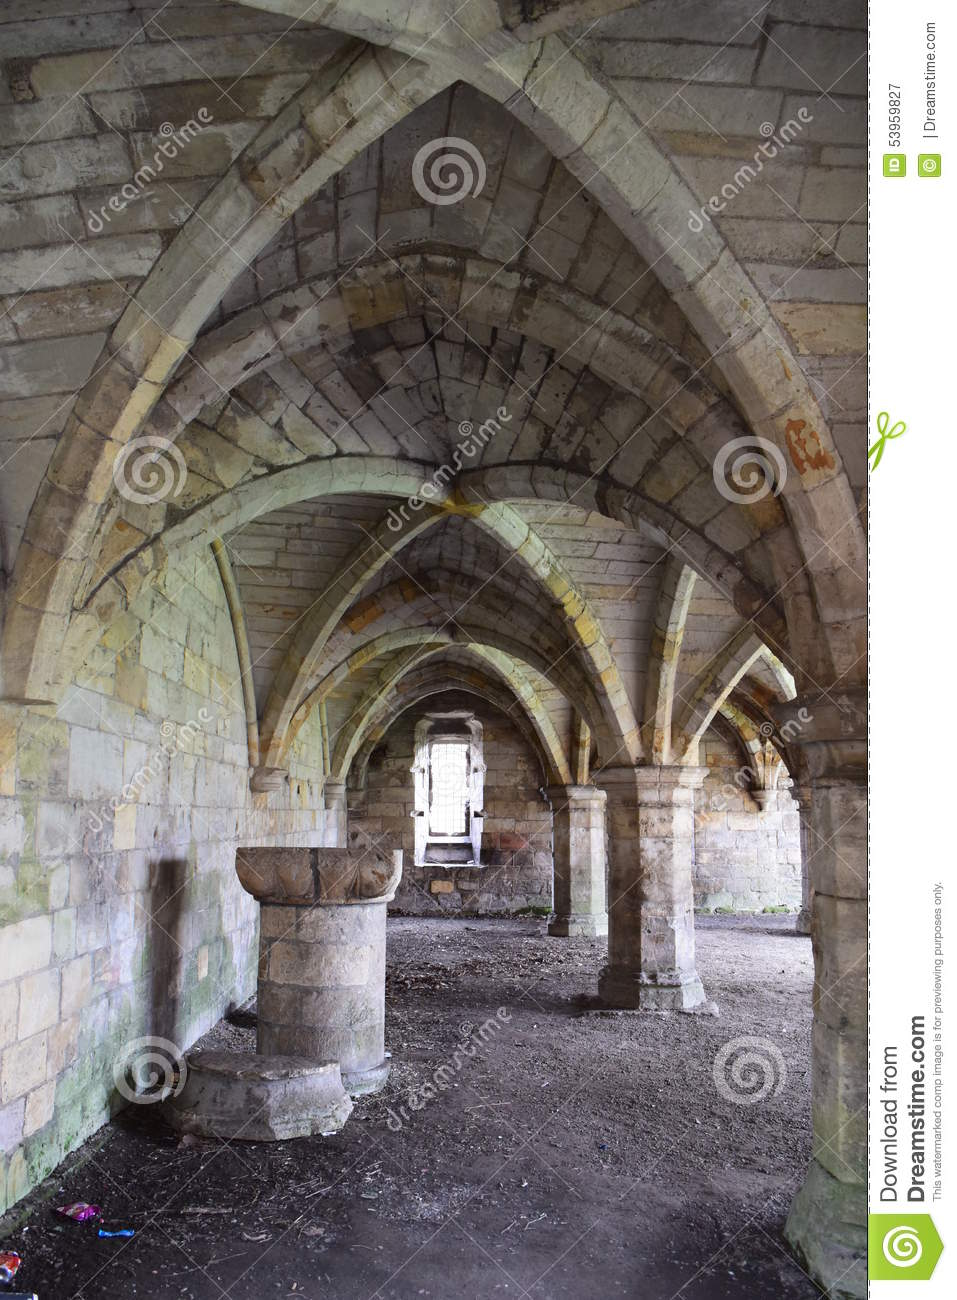 Abbey undercroft with rib vaulted ceiling